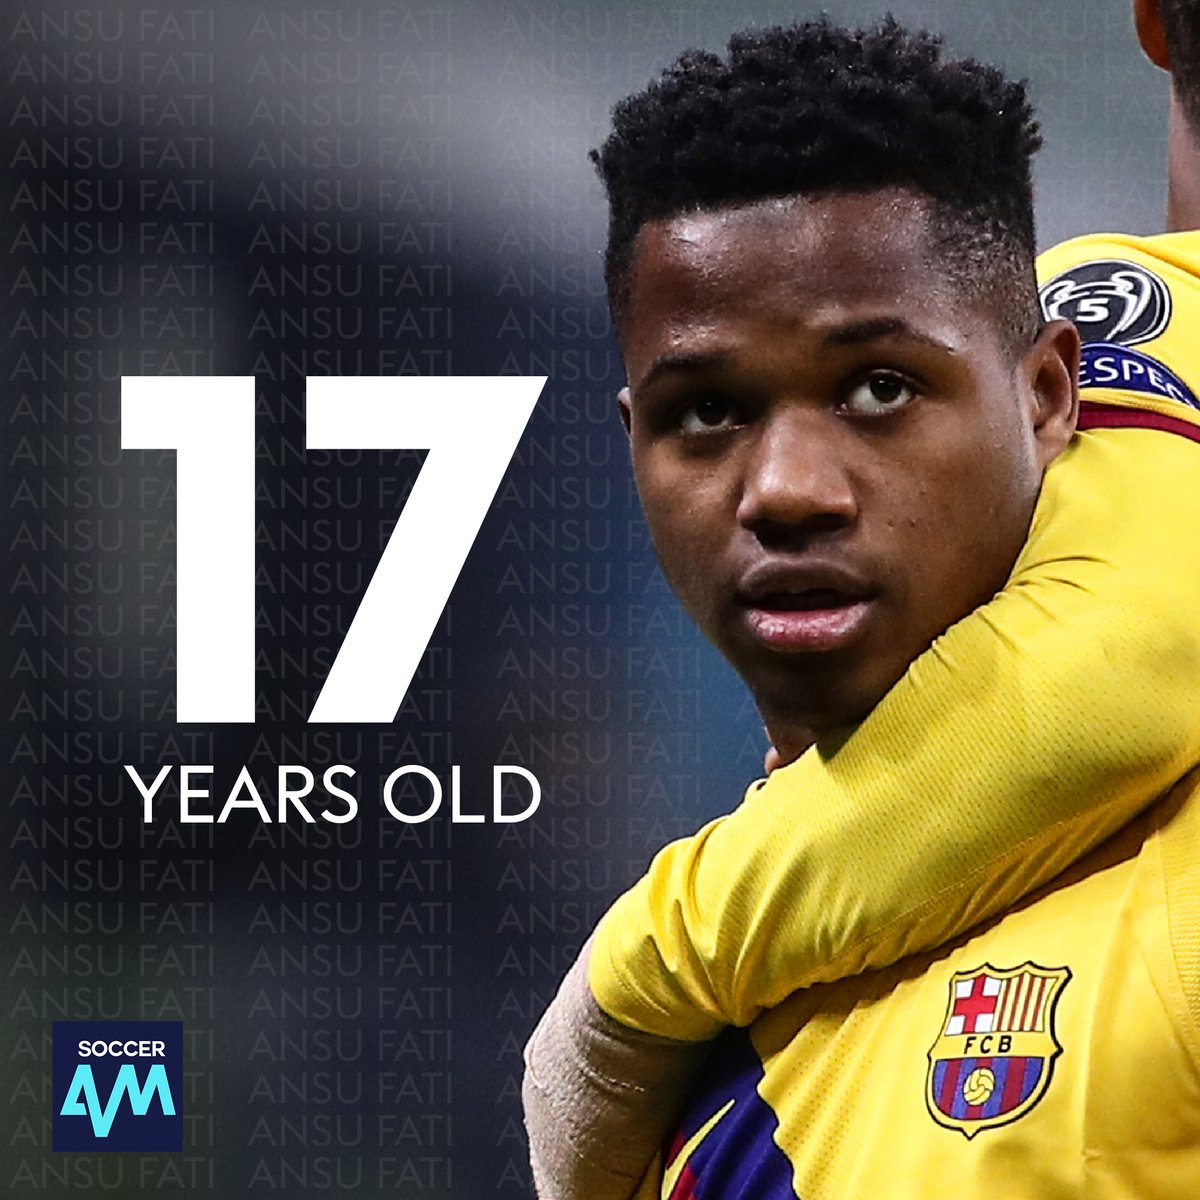 Ansu Fati is now the youngest goalscorer in Champions League history! 17 years and 40 days old 👶 What was your biggest achievement at his age? 💭